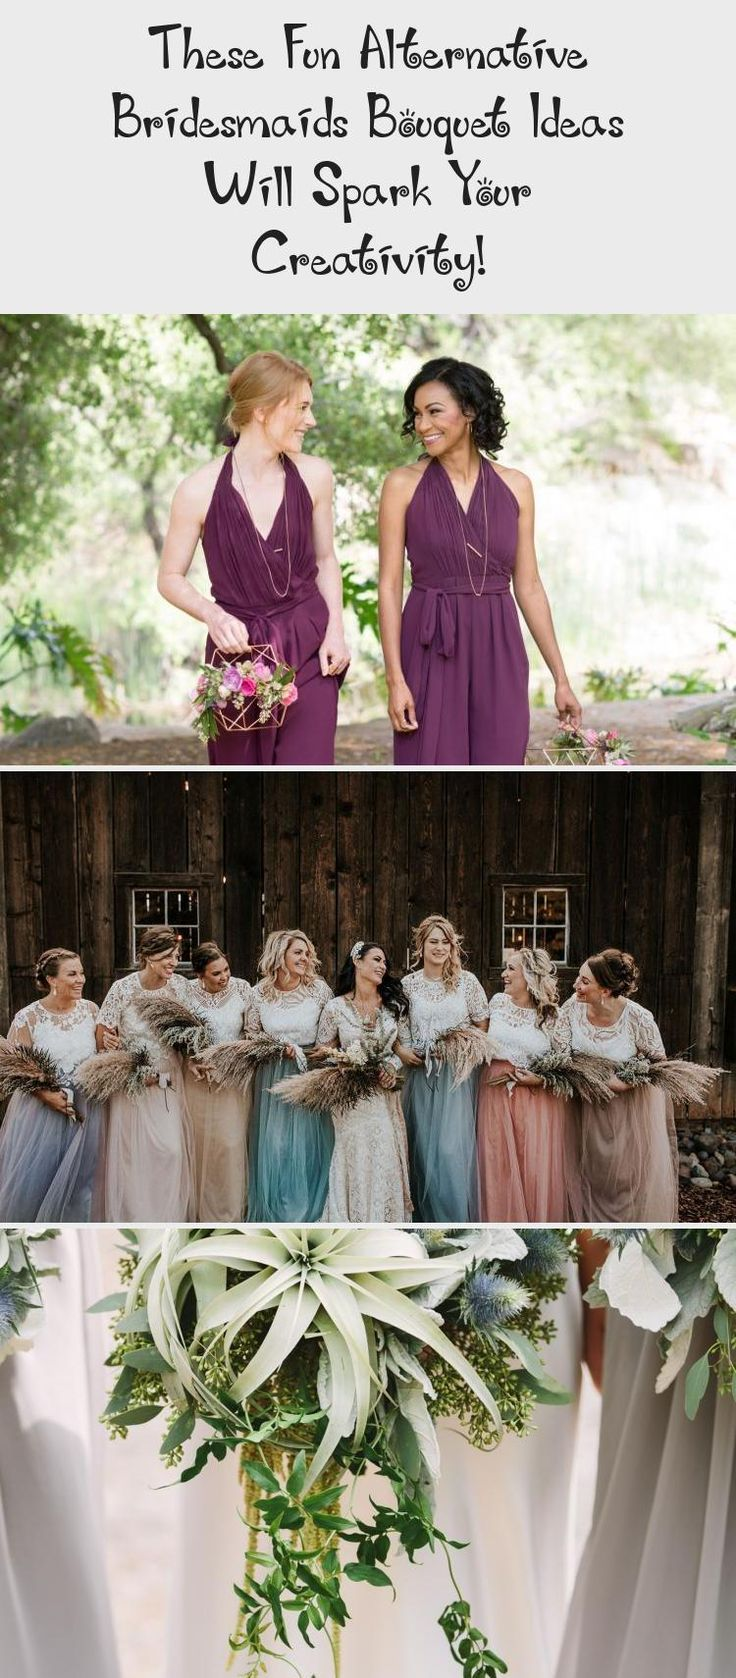 These Fun Alternative Bridesmaids Bouquet Ideas Will Spark Your Creativity! - Green Wedding Shoes #BridesmaidDressesSpring #BridesmaidDressesDustyRose #PinkBridesmaidDresses #BridesmaidDressesTeaLength #MermaidBridesmaidDresses